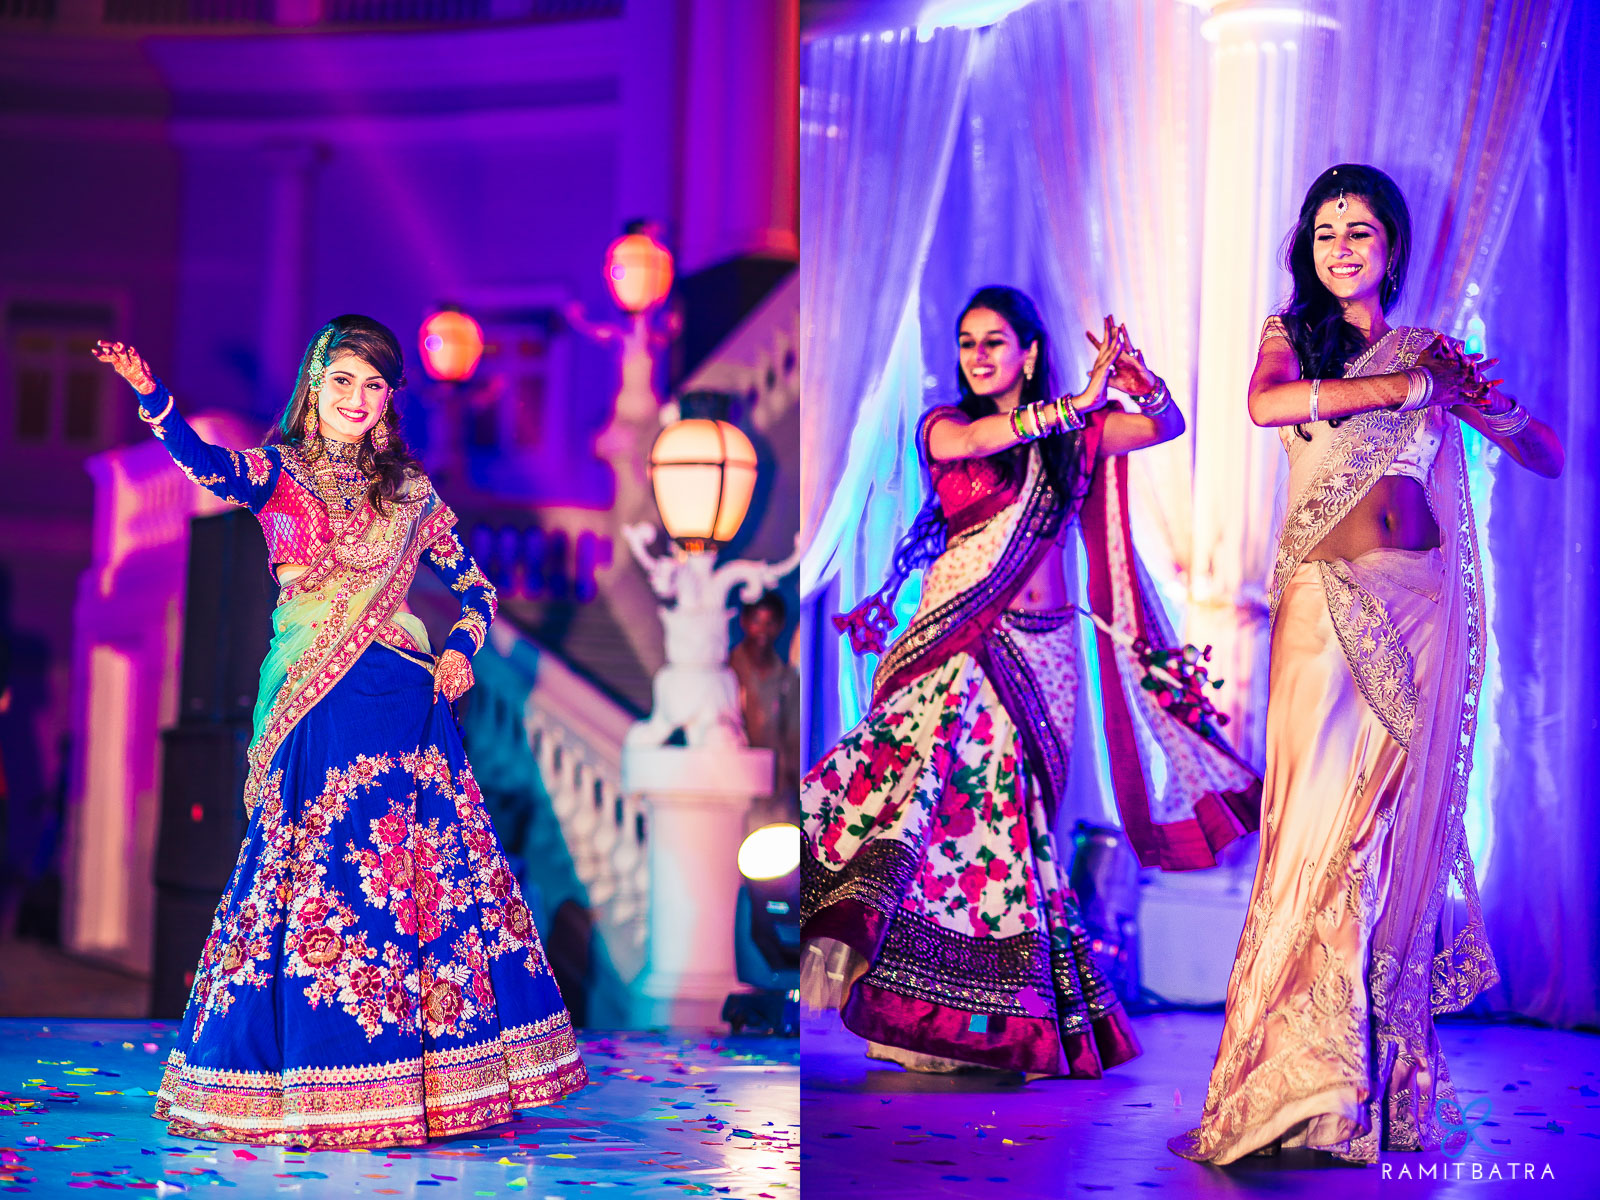 Wedding-Photographer-Hyderabad-India-RamitBatra_17